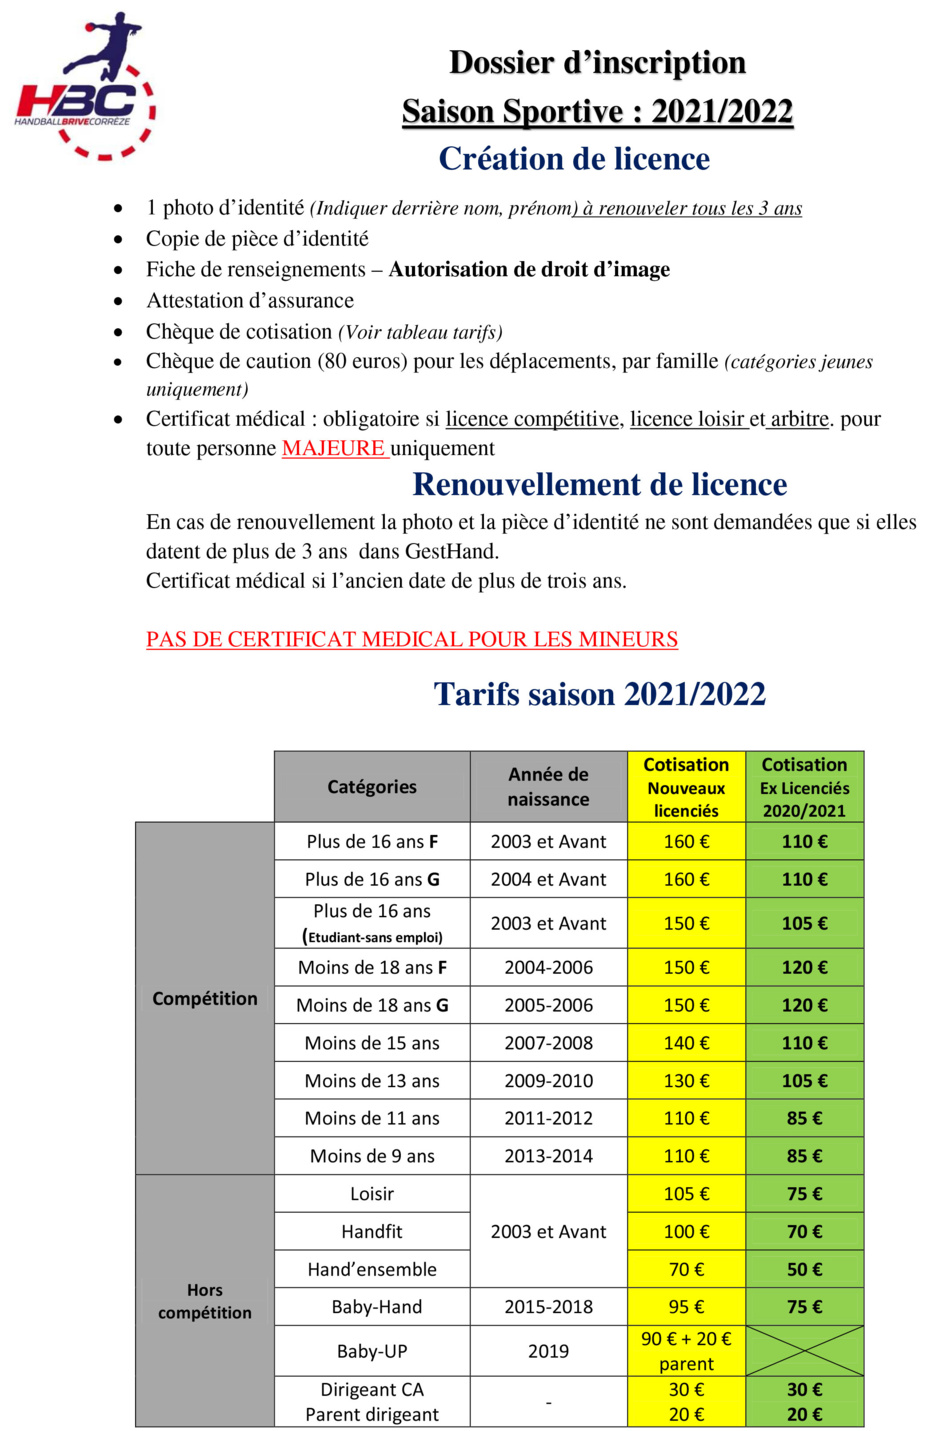 Dossier Inscription 2020-2021